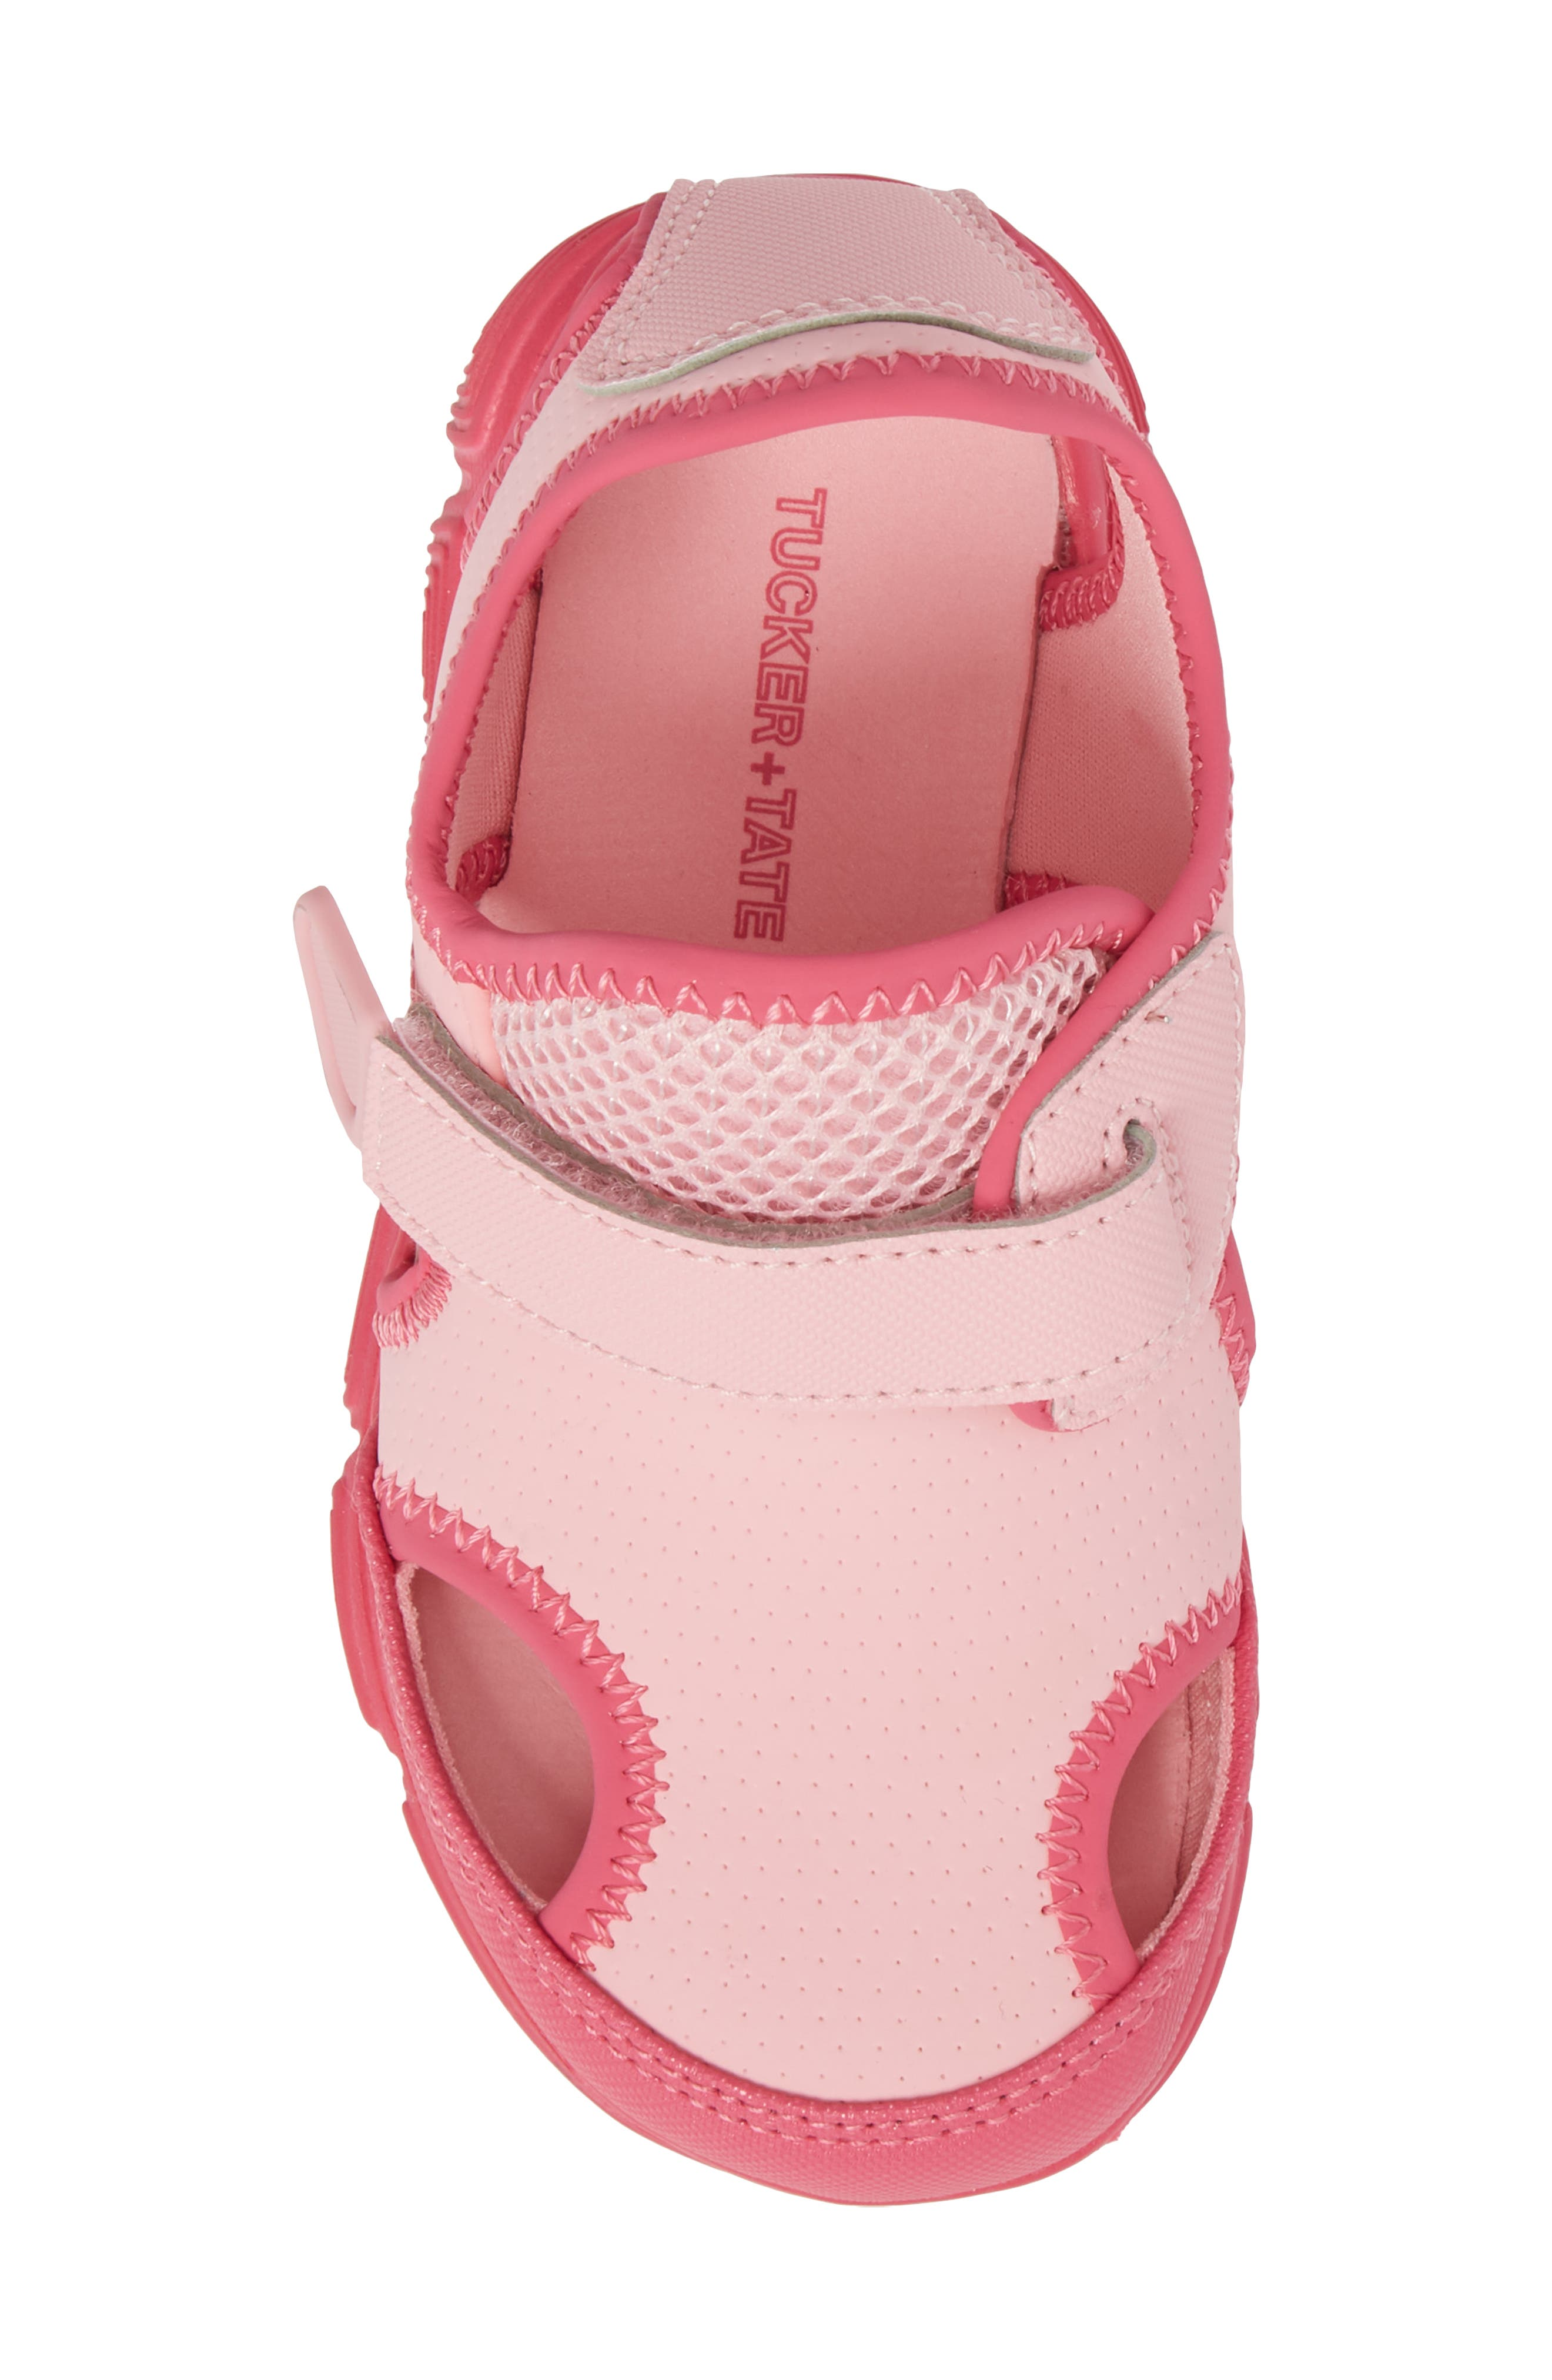 Sophie Water Sandal,                             Alternate thumbnail 5, color,                             Pink/ Dark Pink